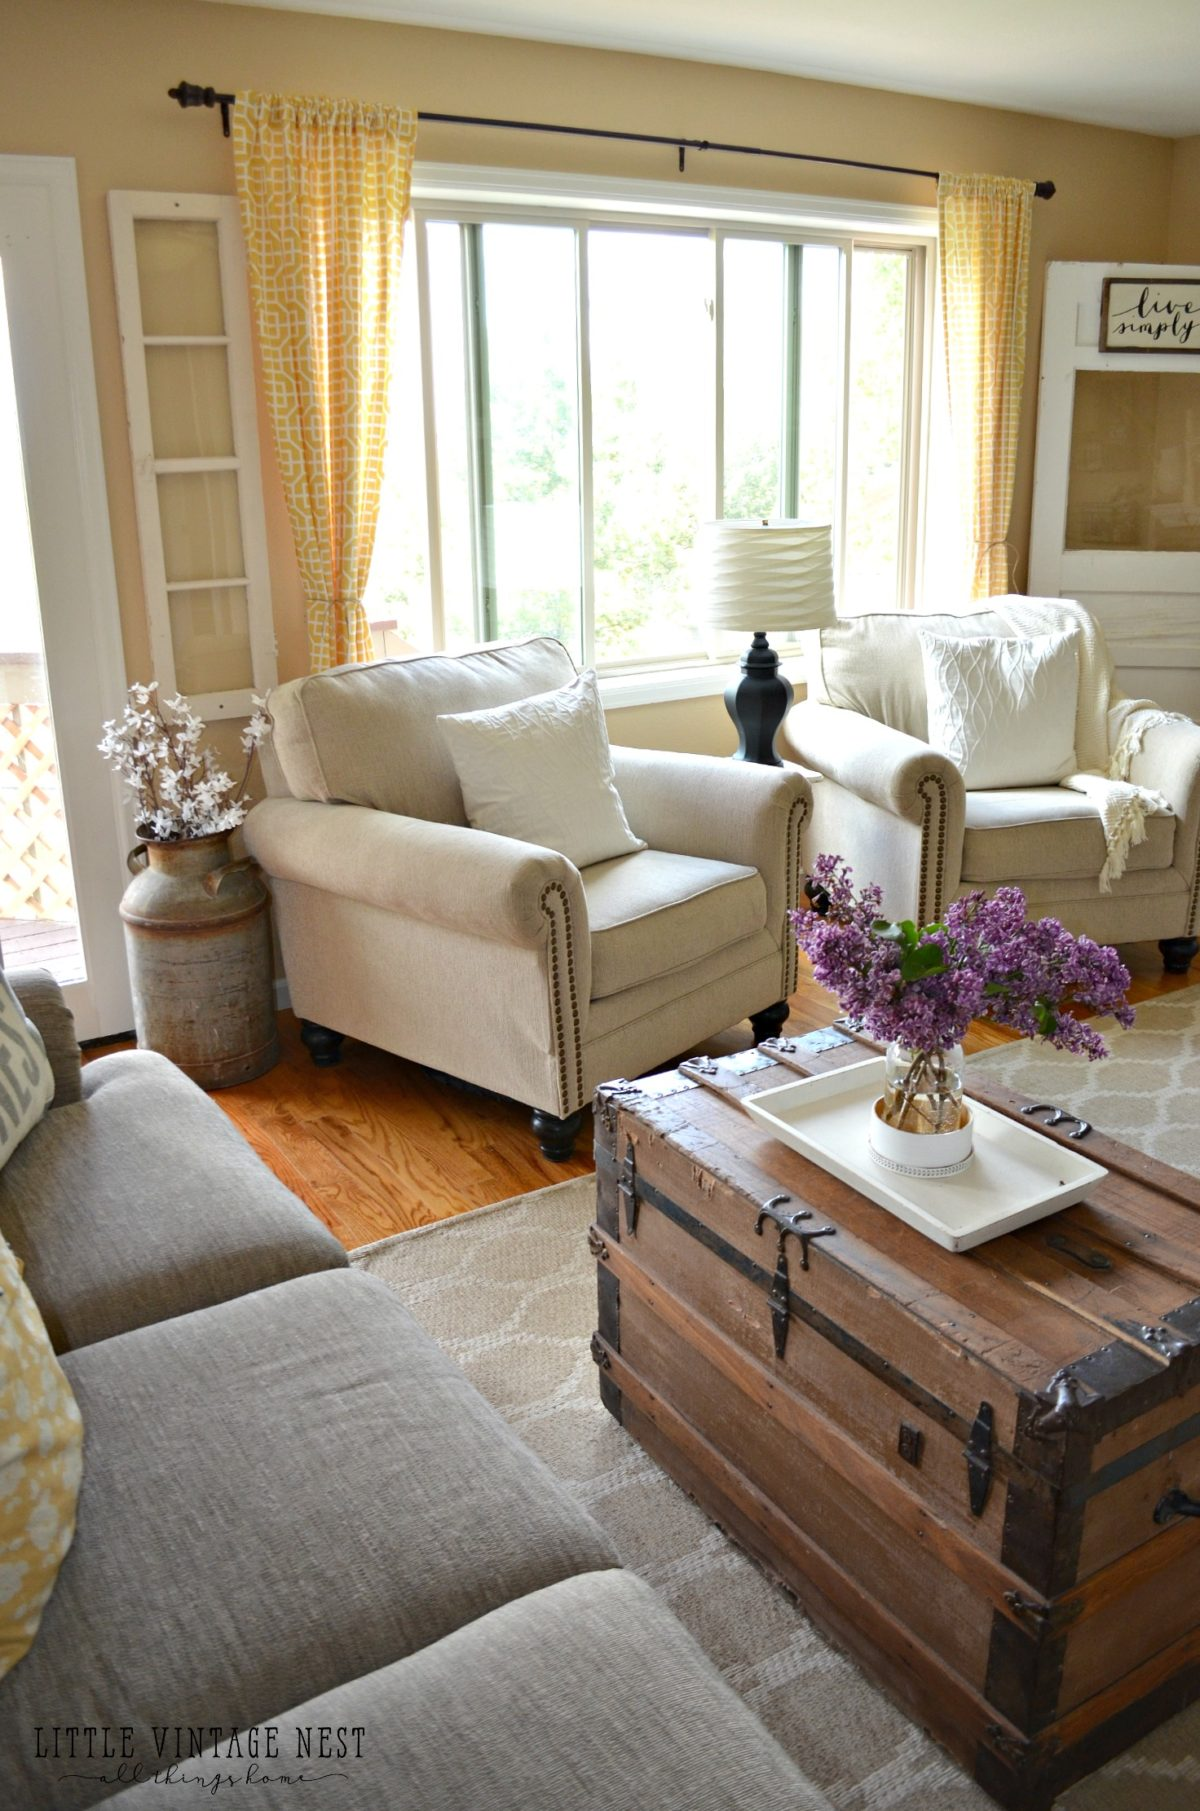 How i transitioned to farmhouse style little vintage nest - Two sofa living room design ...